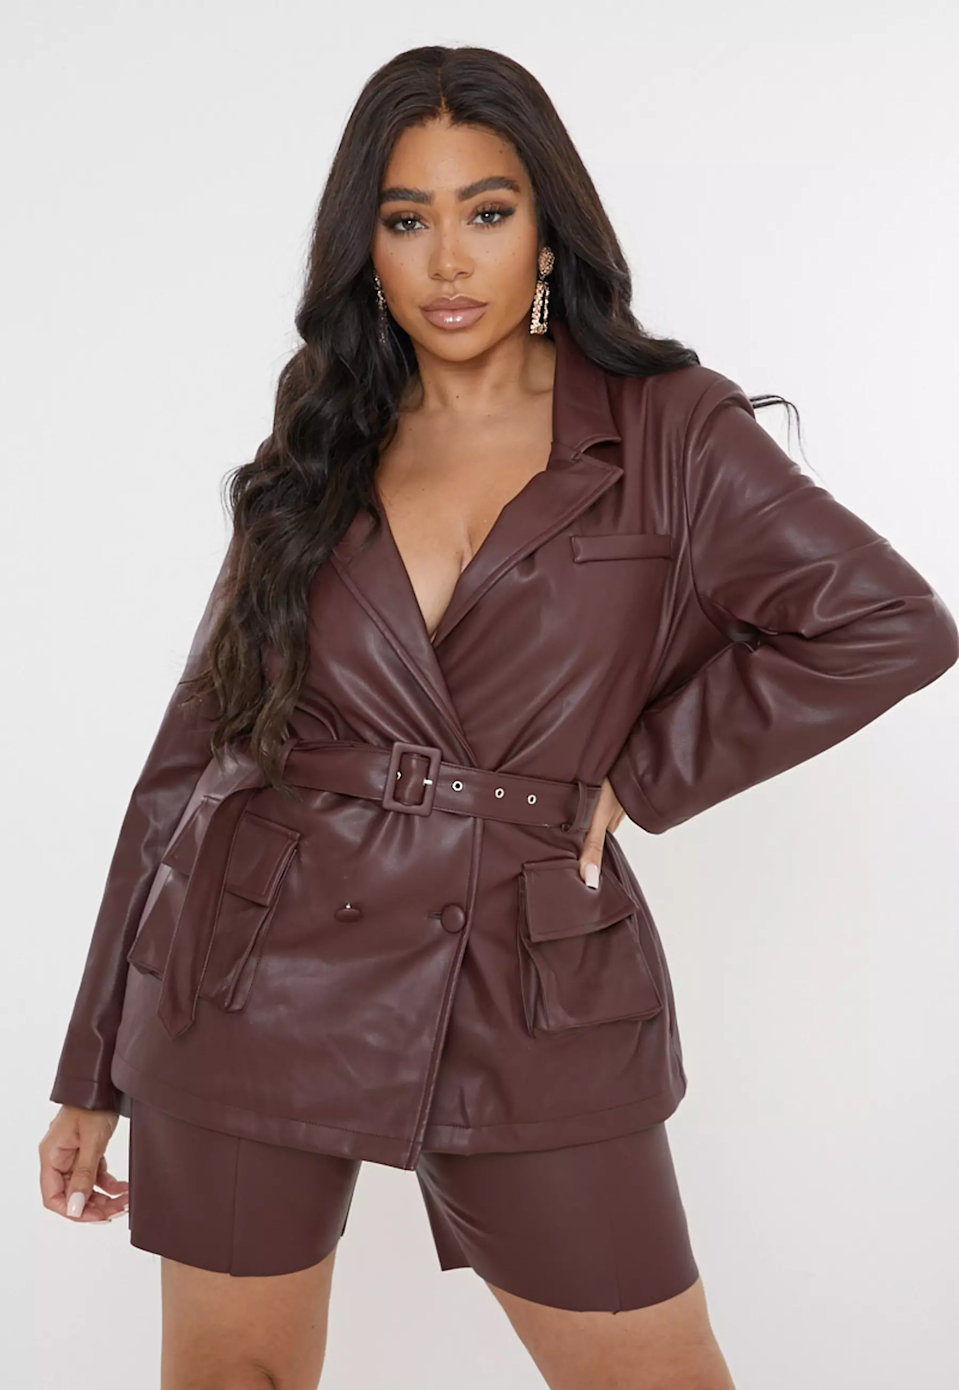 "<br><br><strong>Missguided</strong> Chocolate Co Ord Faux Leather Tailored Blazer, $, available at <a href=""https://go.skimresources.com/?id=30283X879131&url=https%3A%2F%2Ffave.co%2F3jtxvHS"" rel=""nofollow noopener"" target=""_blank"" data-ylk=""slk:Missguided"" class=""link rapid-noclick-resp"">Missguided</a>"